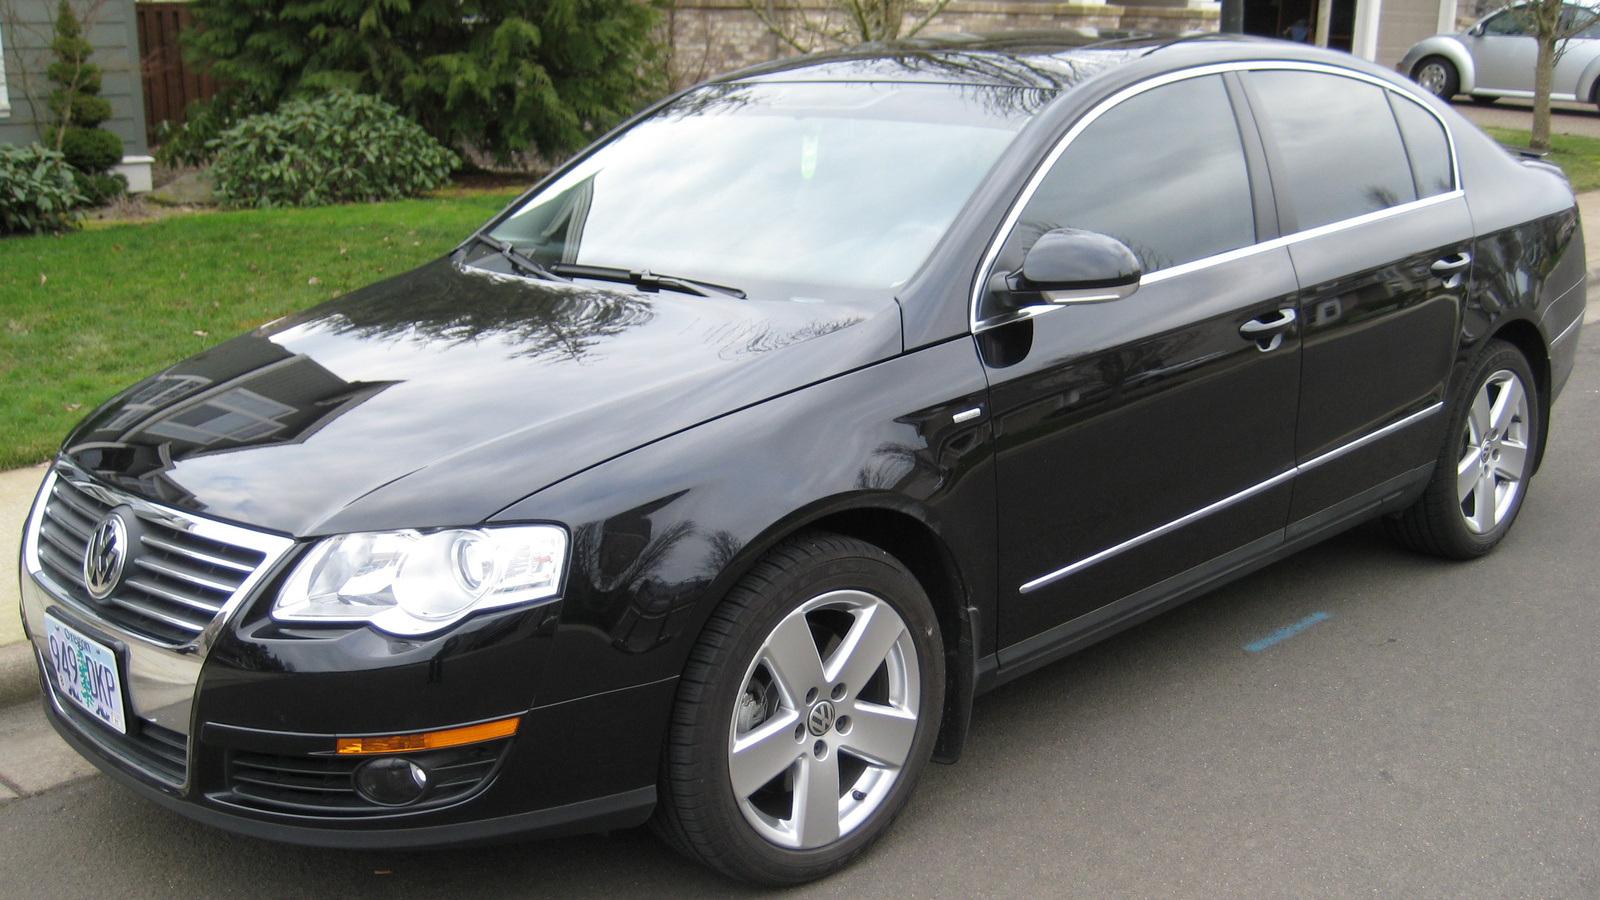 2007 volkswagen passat exterior pictures cargurus. Black Bedroom Furniture Sets. Home Design Ideas